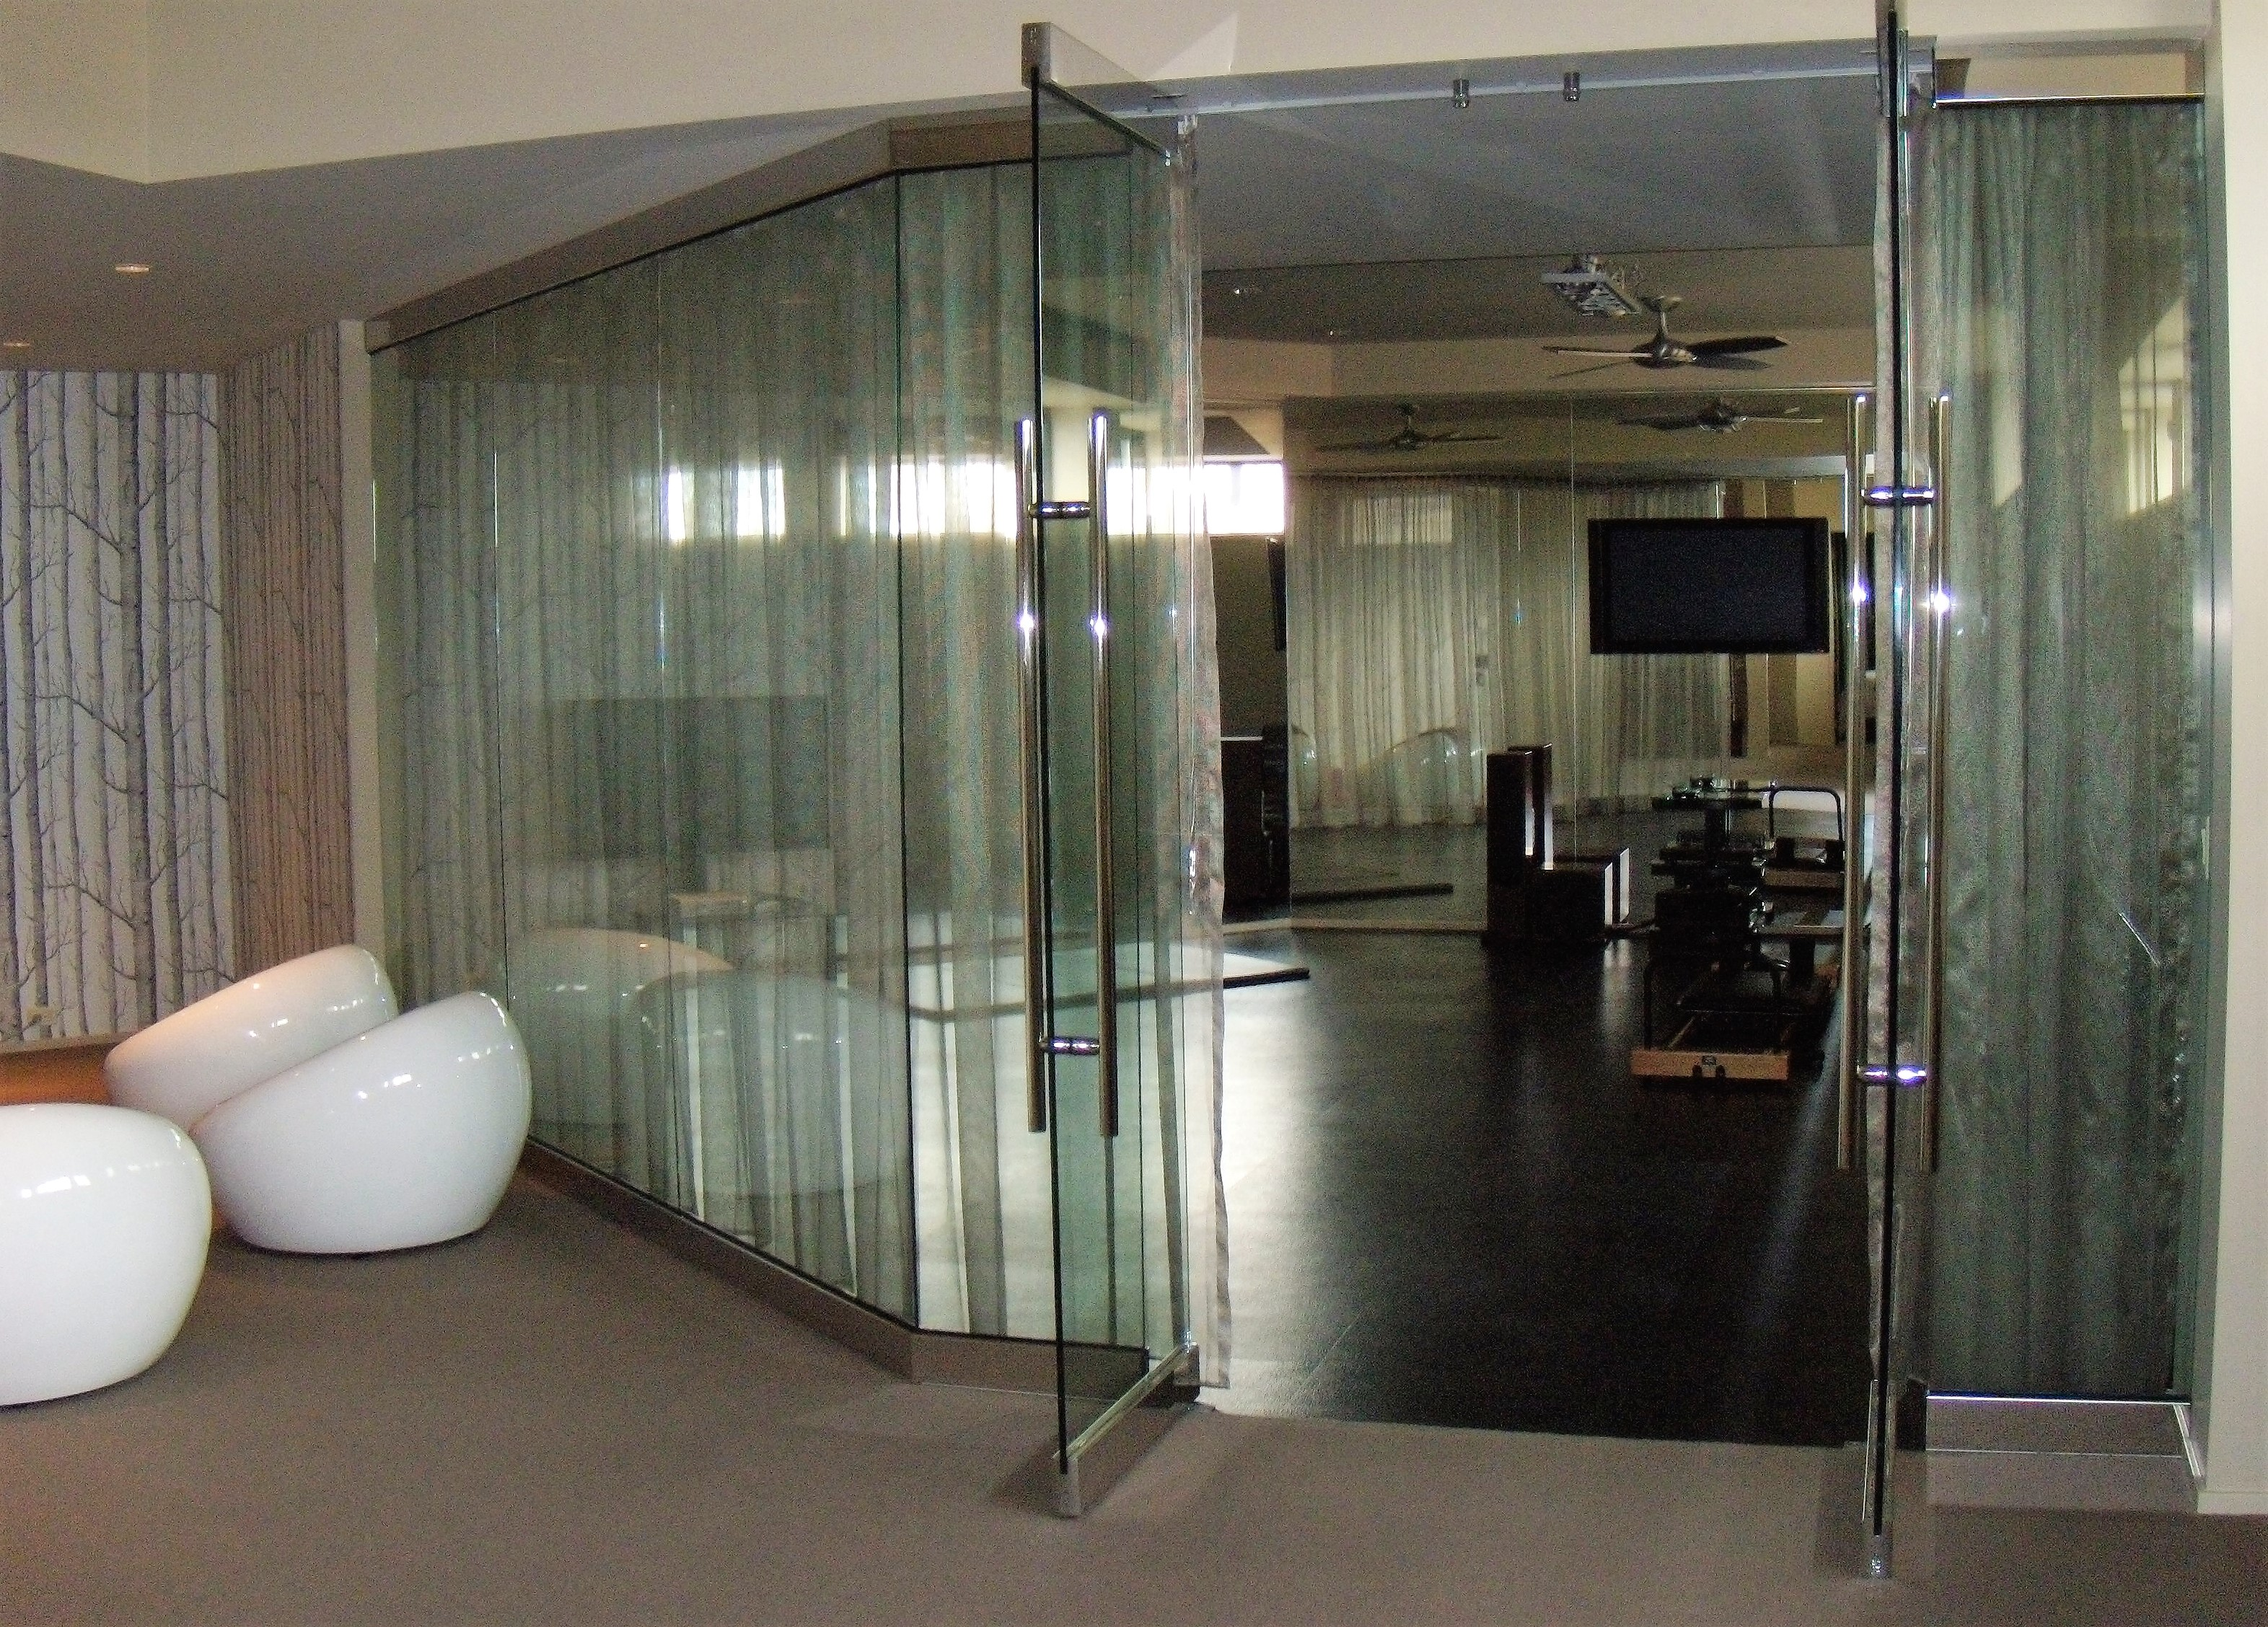 glass walls separating spaces